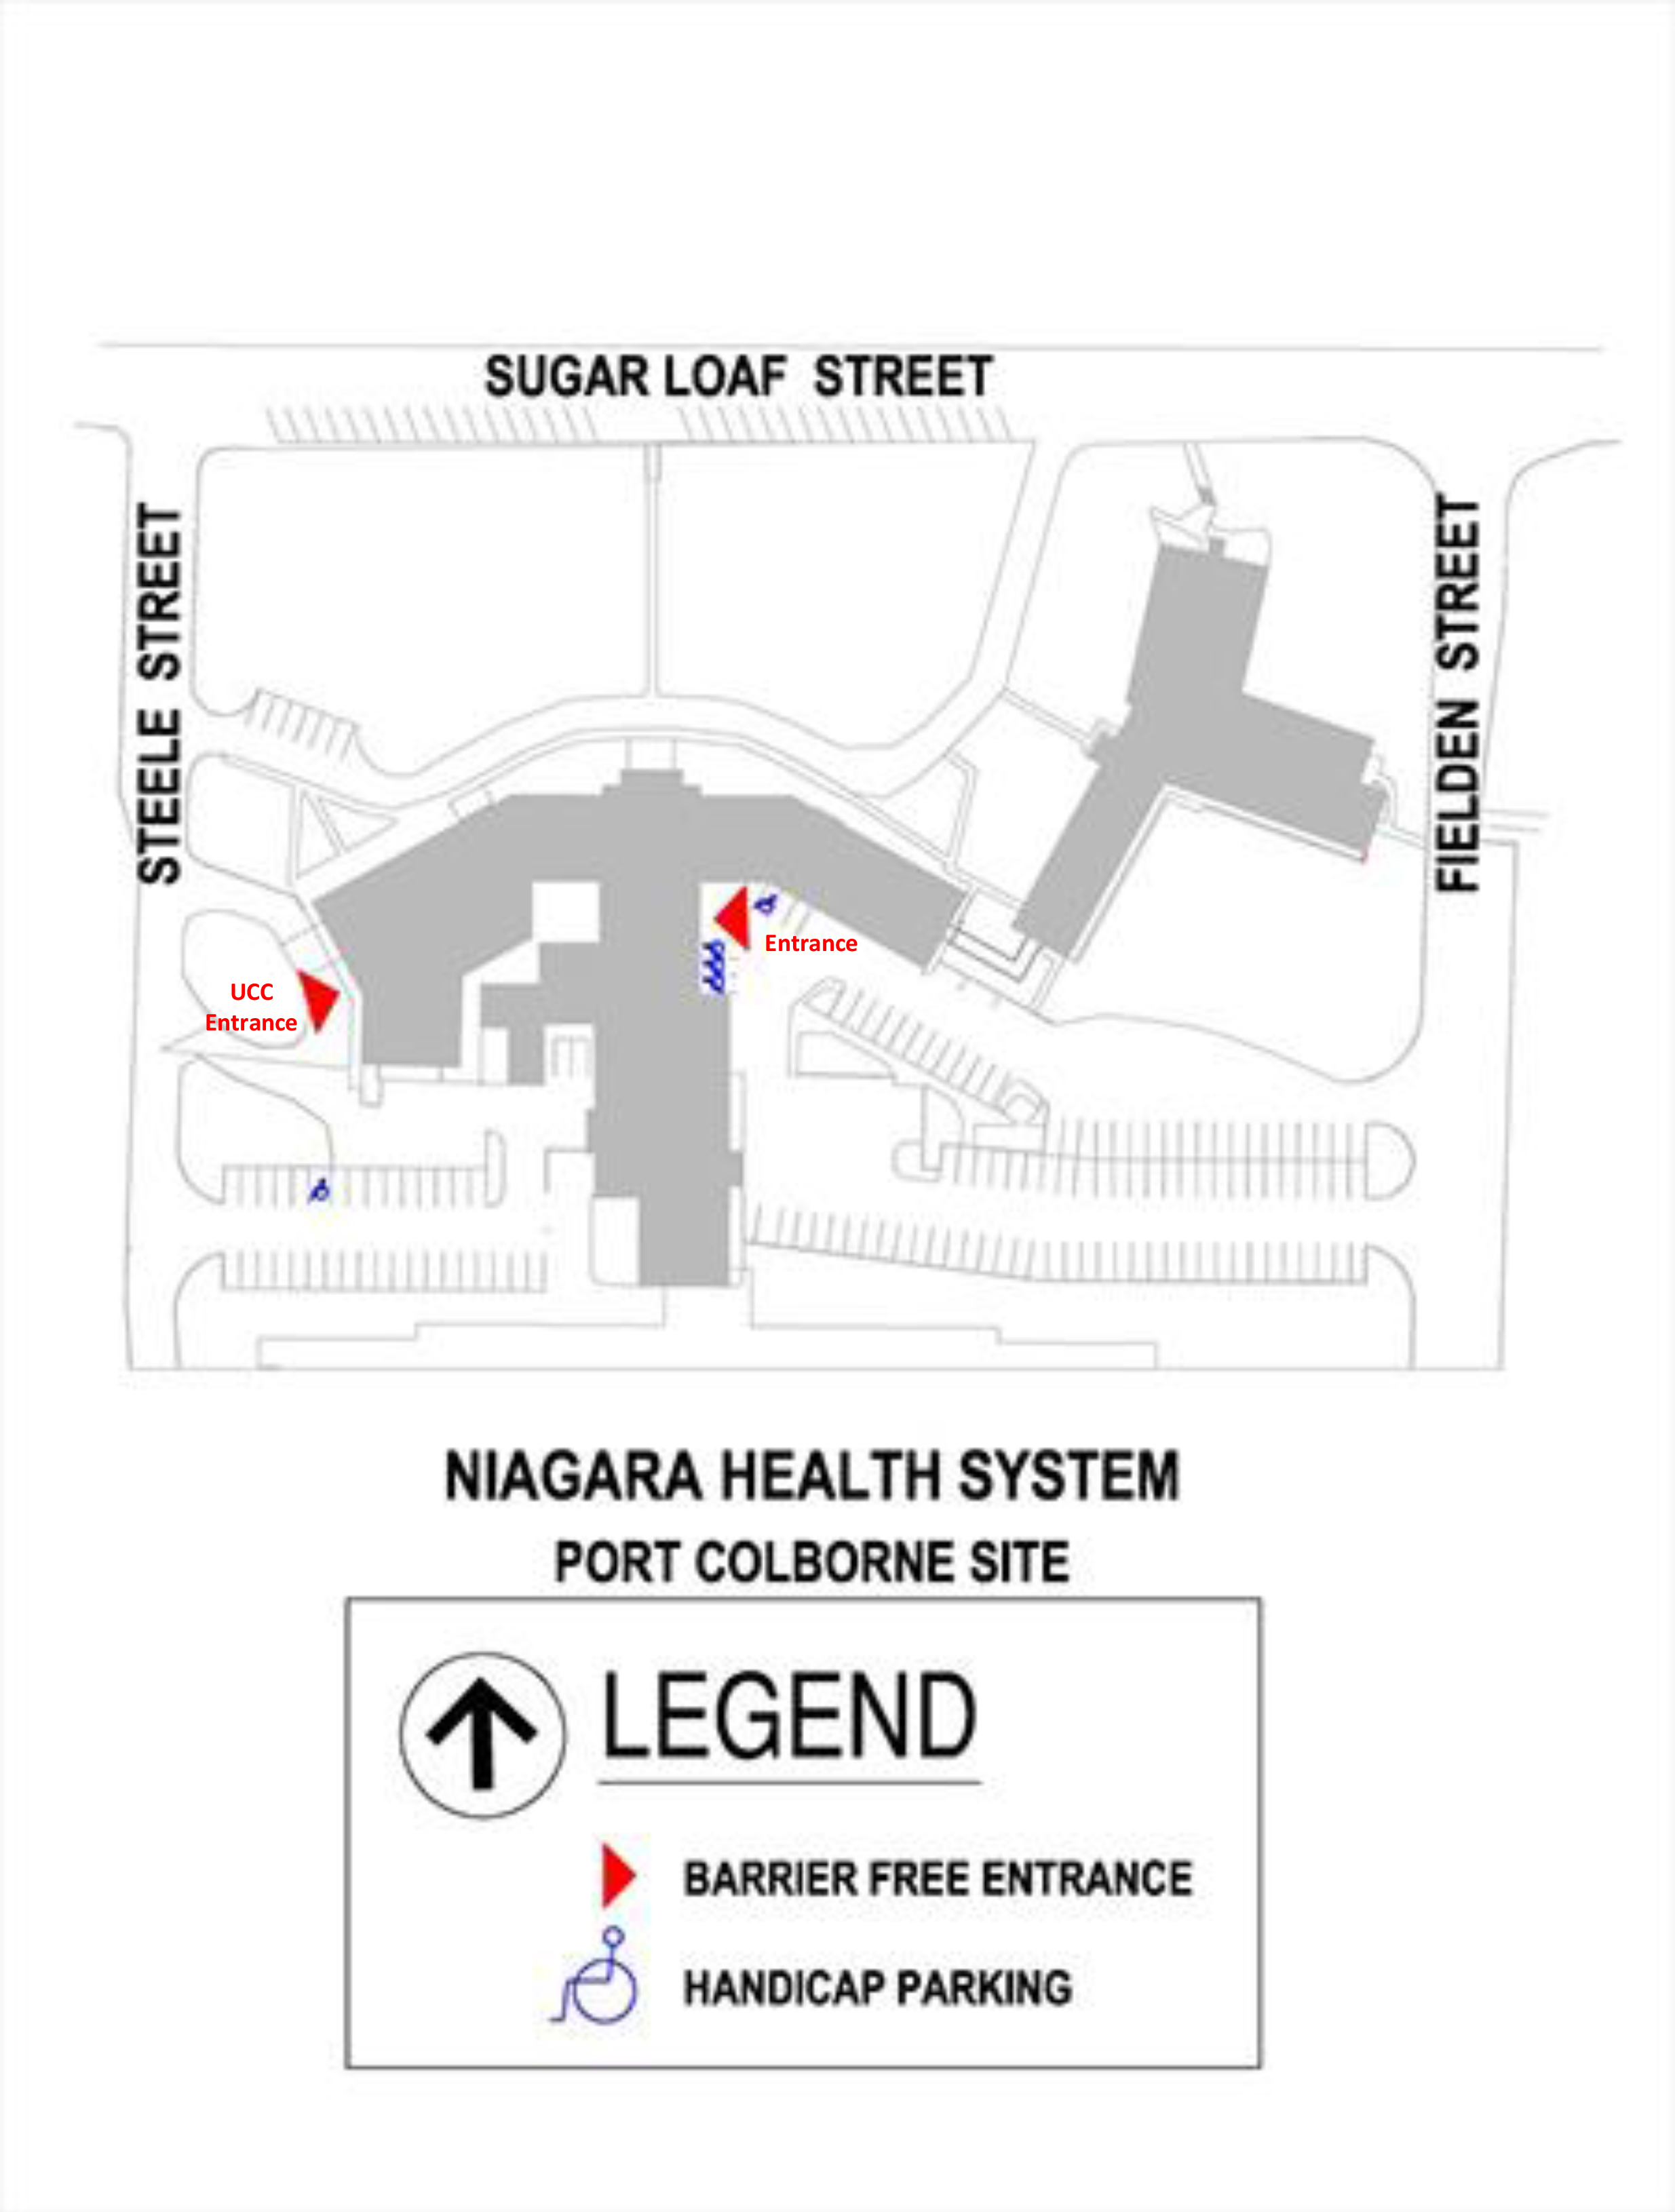 Entrance & Accessibility Information